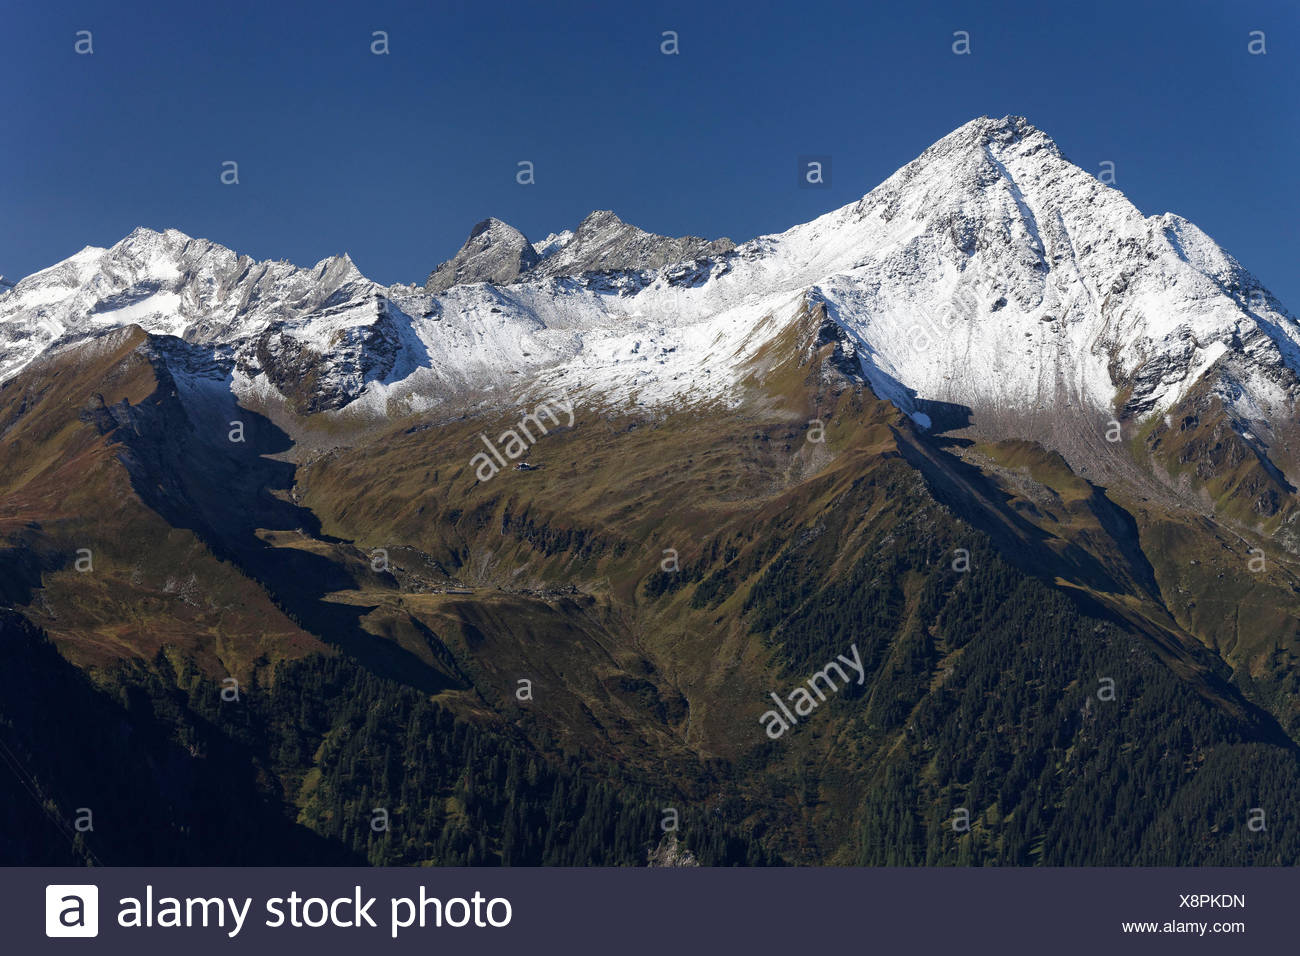 View to the alpine scenery of the Penken to the Ahornmassiv (massif) and Stillupgrund in the high alps nature park of Zillertal alps, Austria Stock Photo